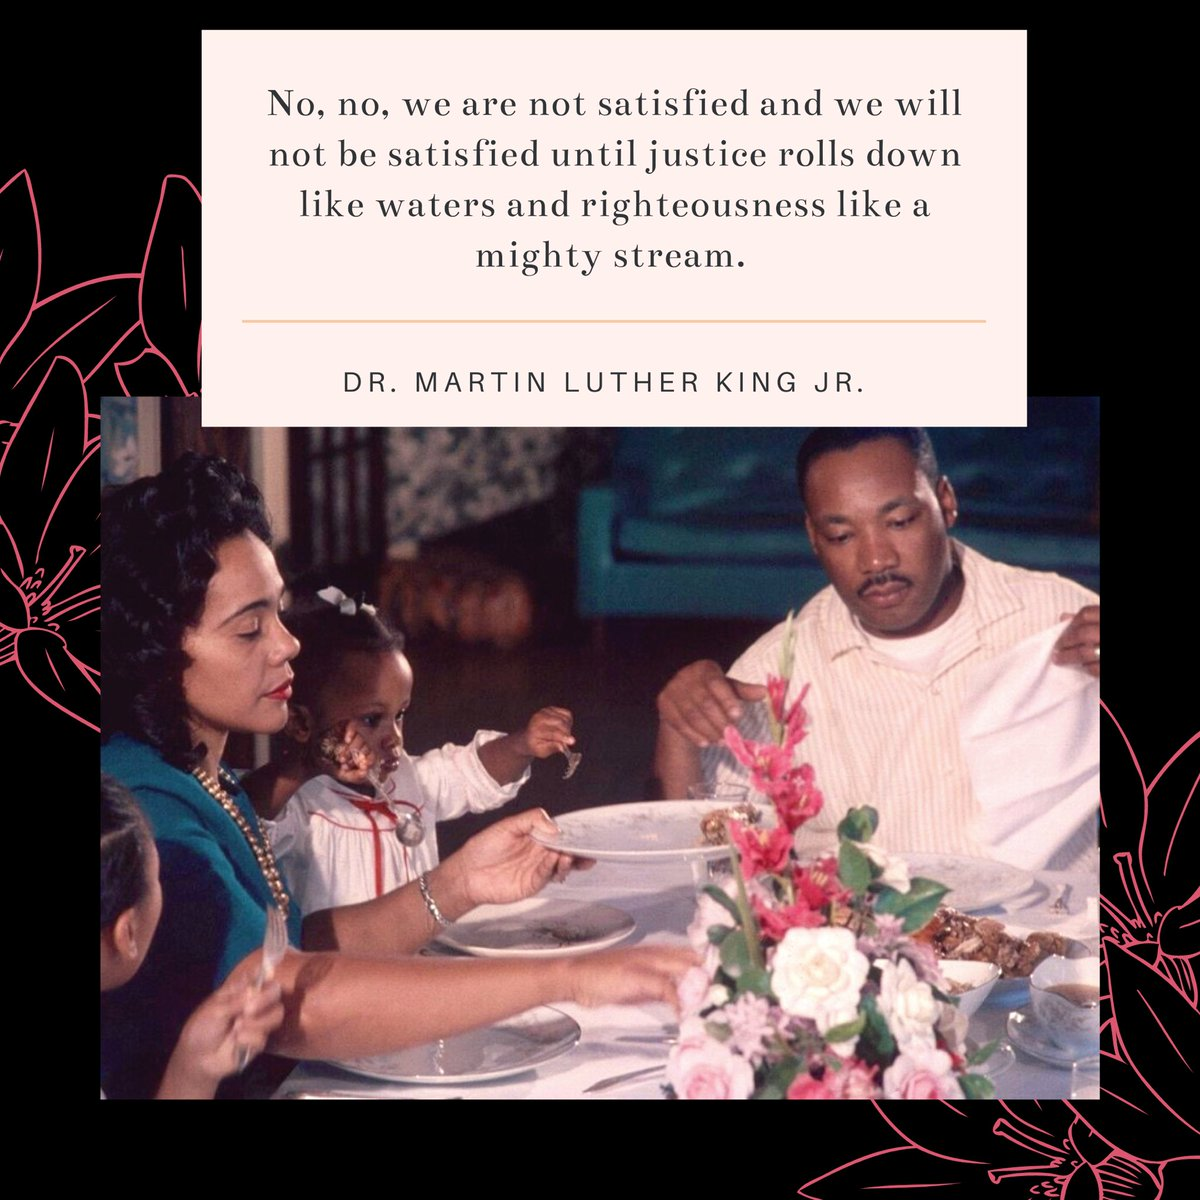 Today we honor Dr. Martin Luther King Jr. and Coretta Scott King for their bravery and sacrifice in the fight for racial and economic justice.  _______ • • • • • #GVFM #GVibesFashionMusic #MartinLutherKing #MLK #MLKDay #CorettaScottKing #CivilRights #BlackLivesMatter